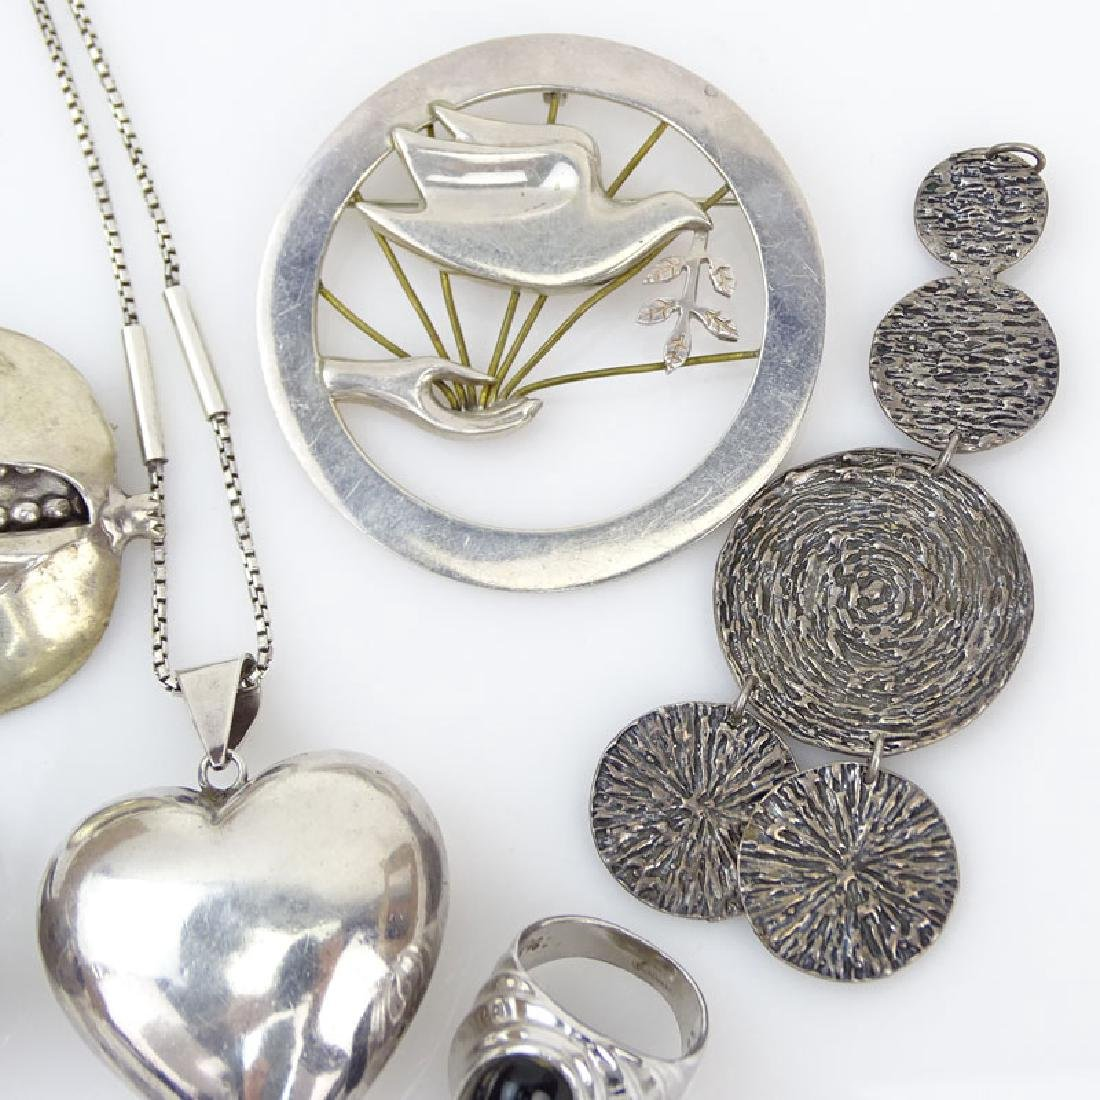 Seven (7) Piece Sterling Silver Jewelry Lot Including: - 3